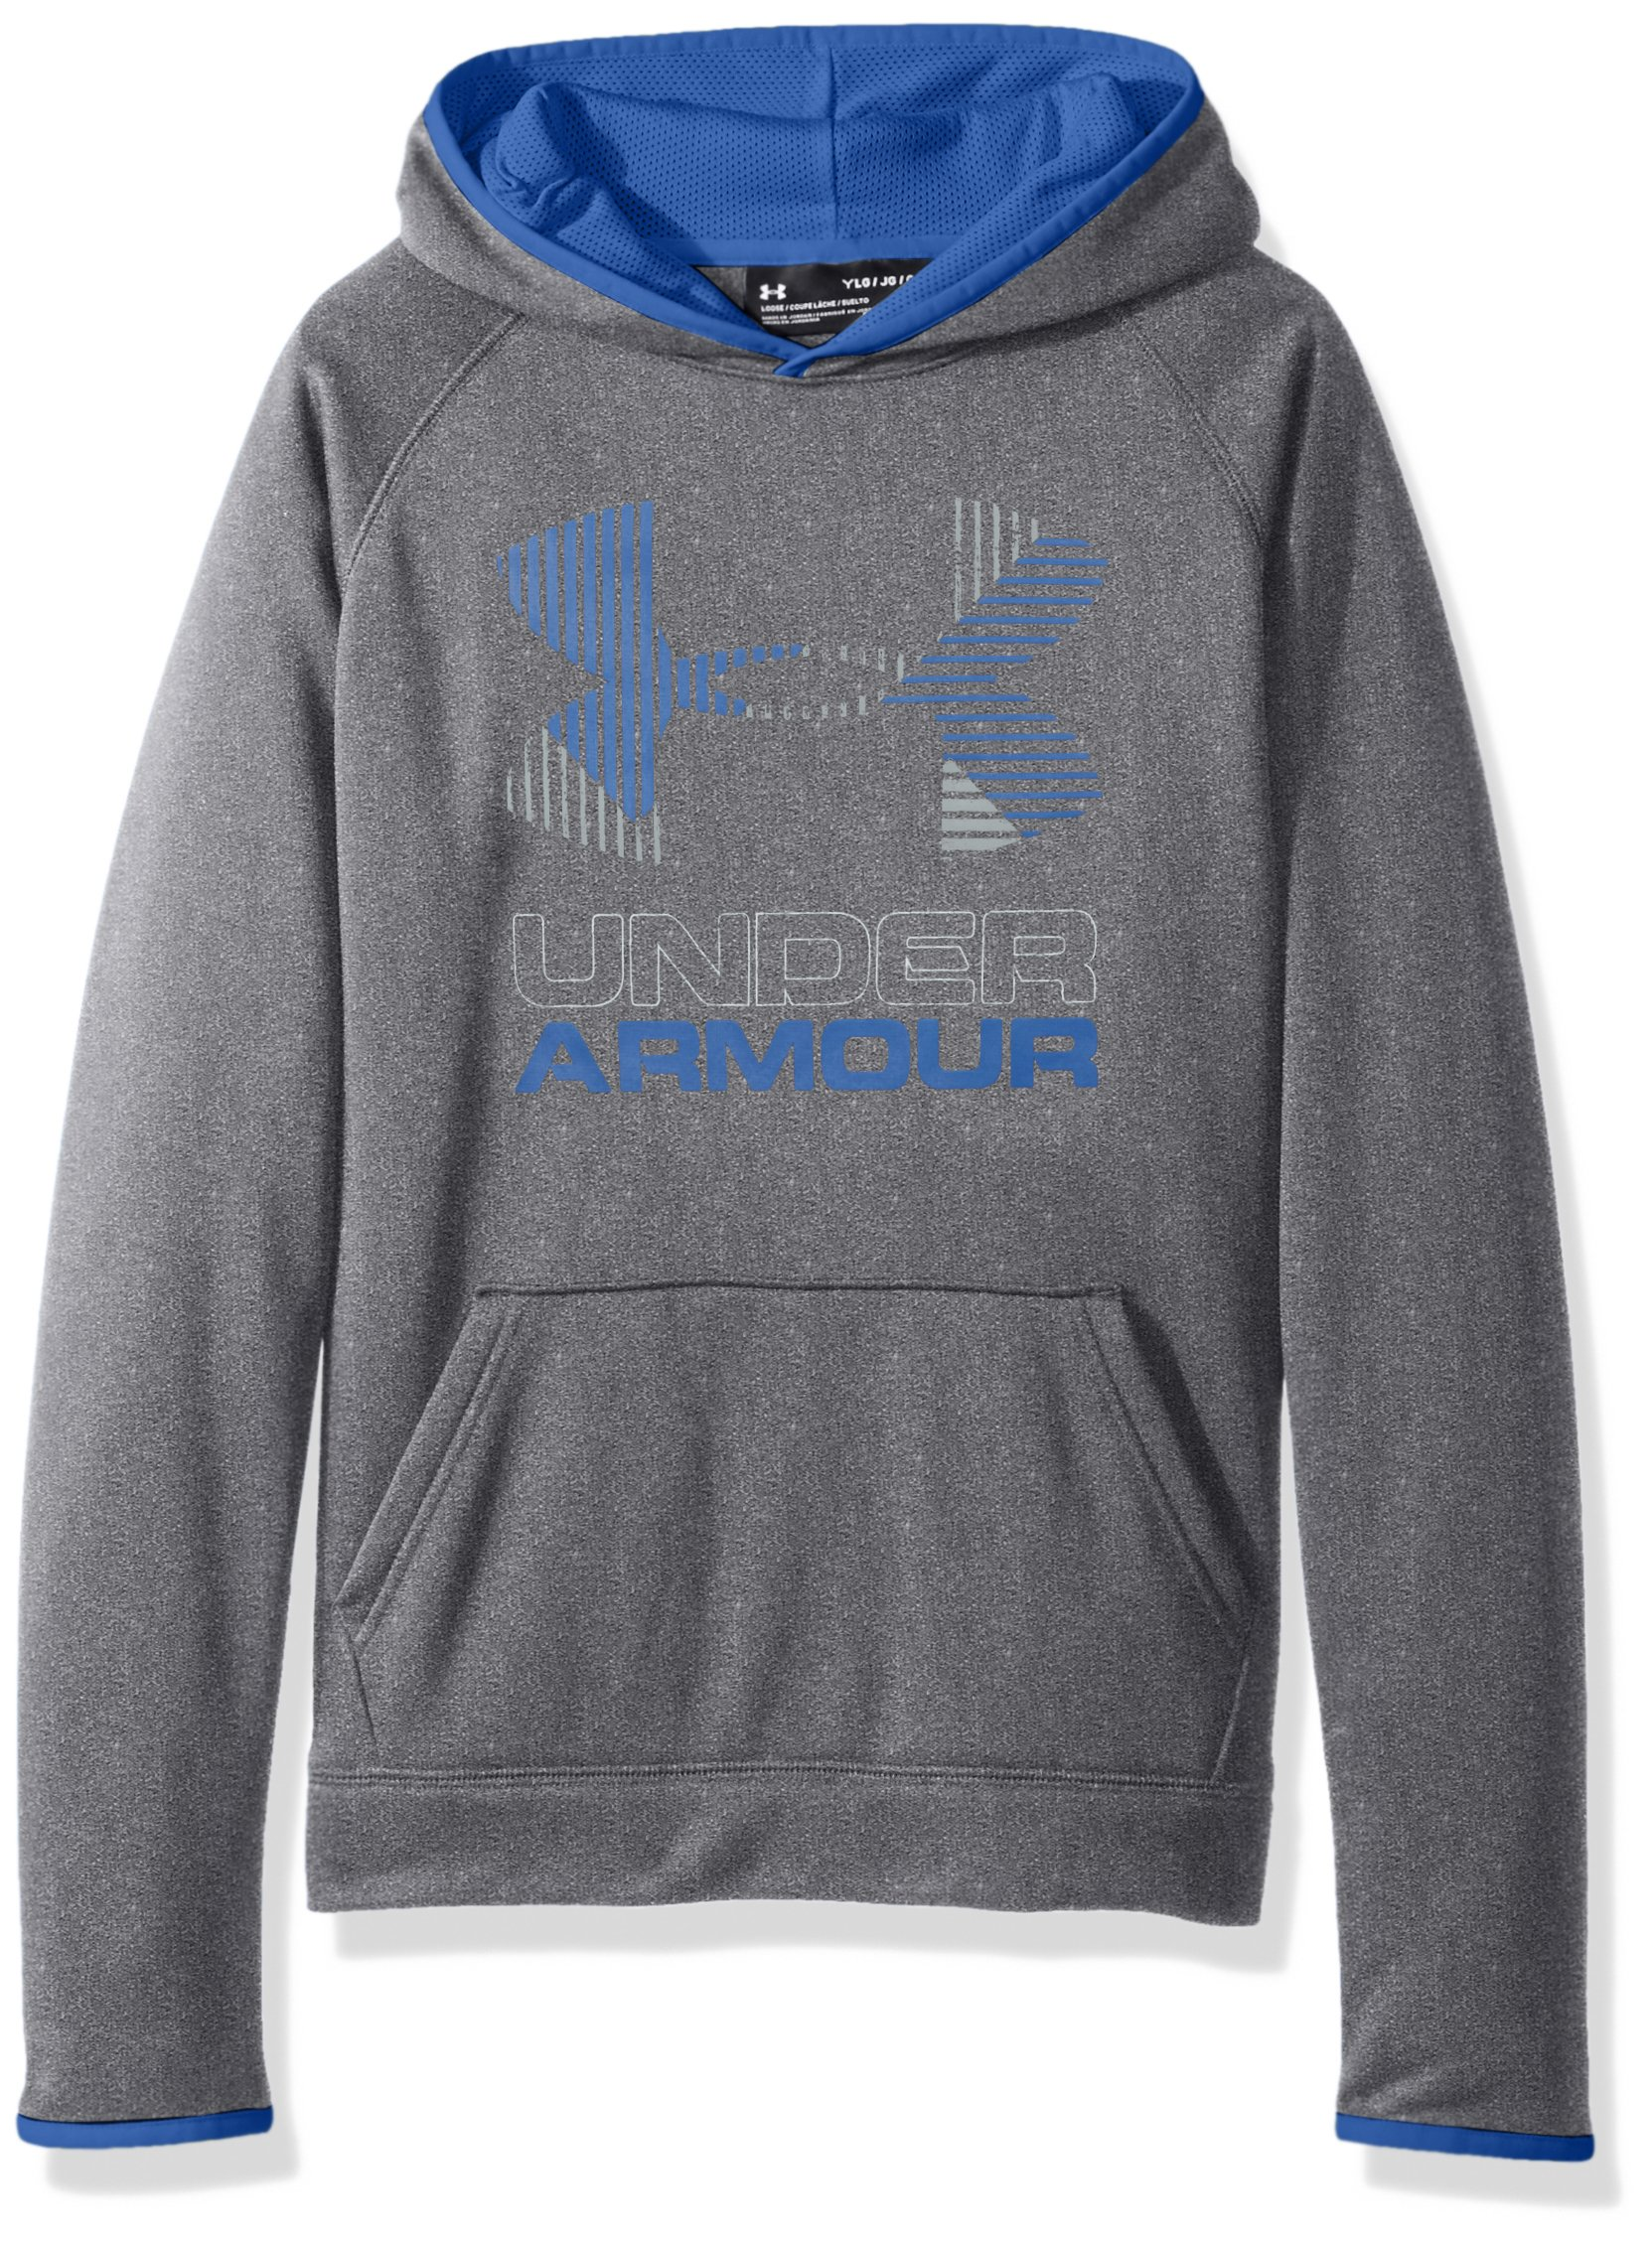 Under Armour Boys' Armour Fleece Solid Big Logo Hoodie, Graphite /Overcast Gray, Youth Small by Under Armour